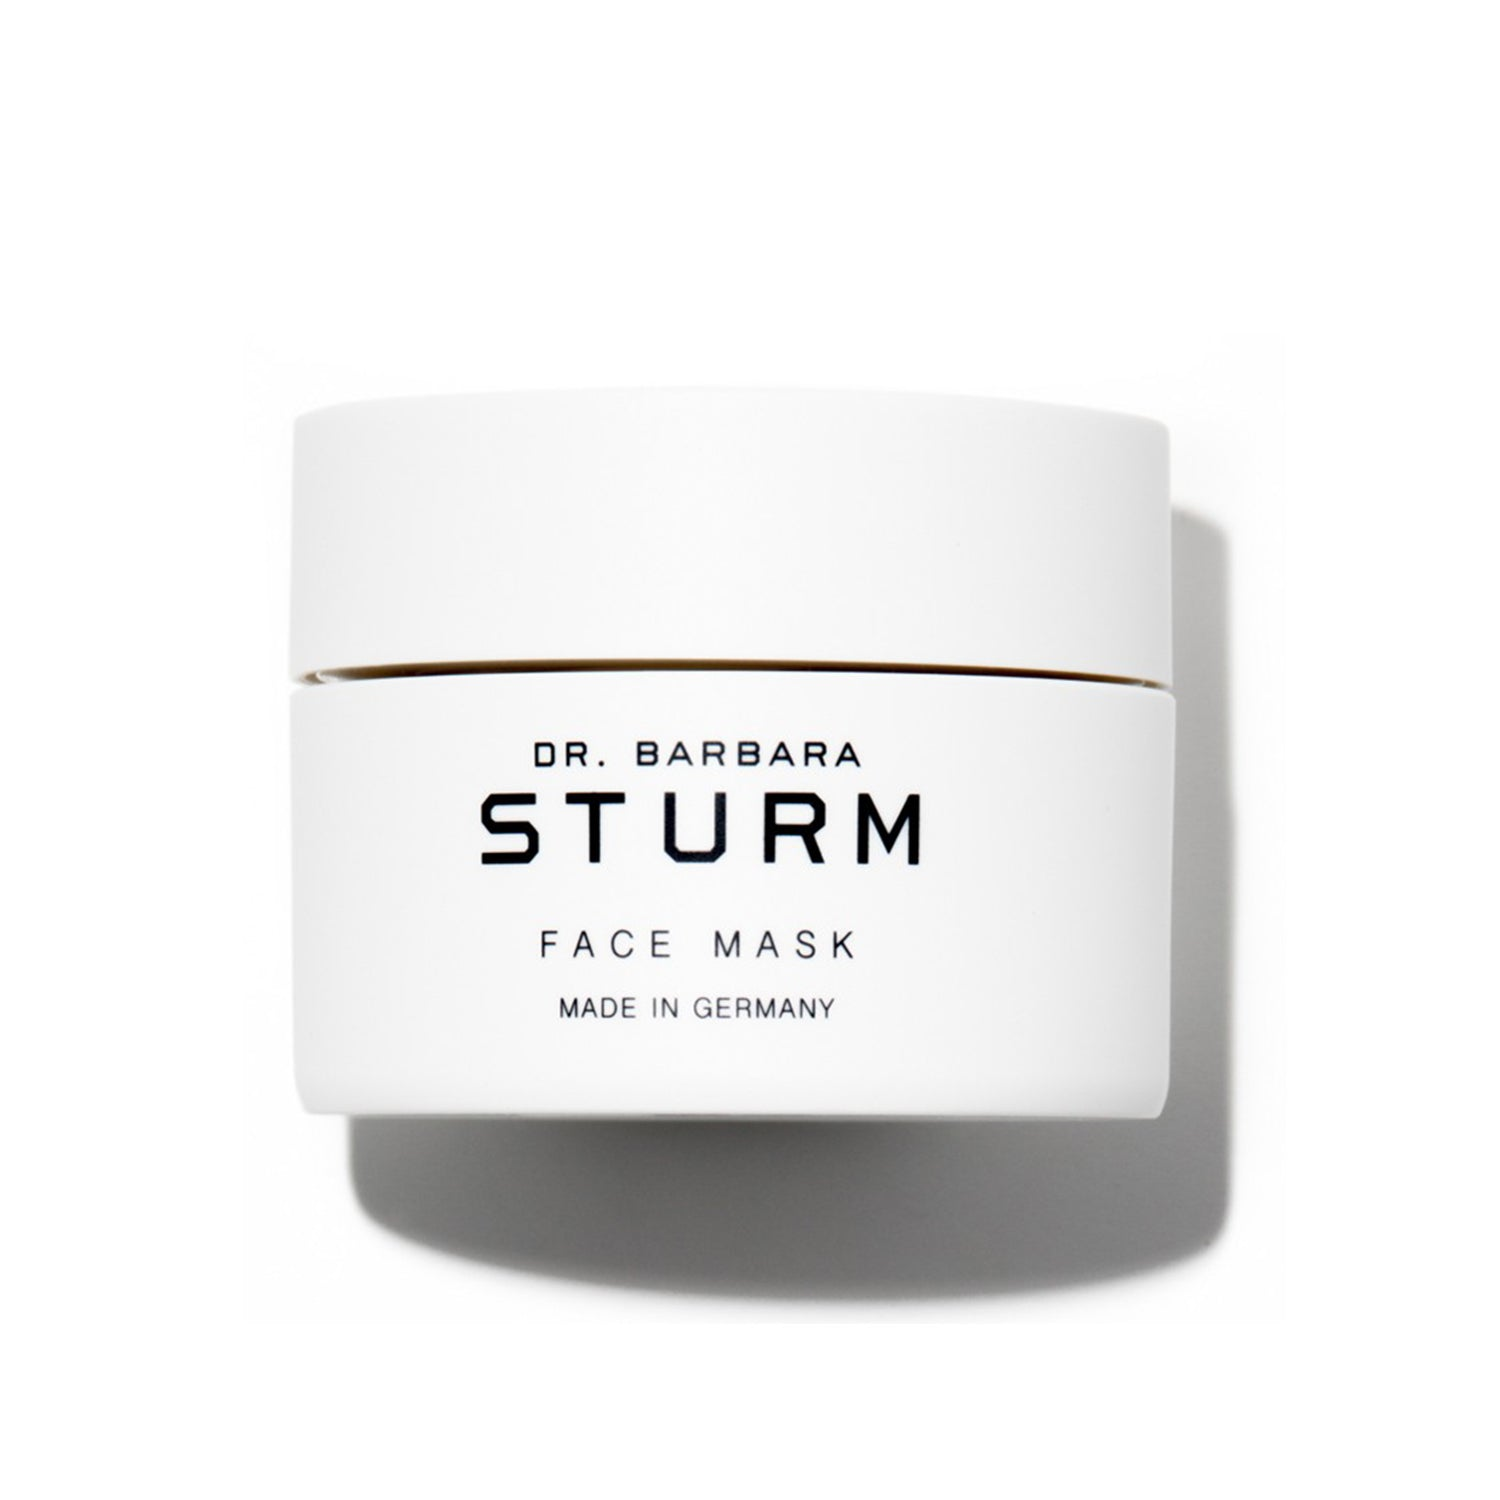 Deep Hydrating Face Mask